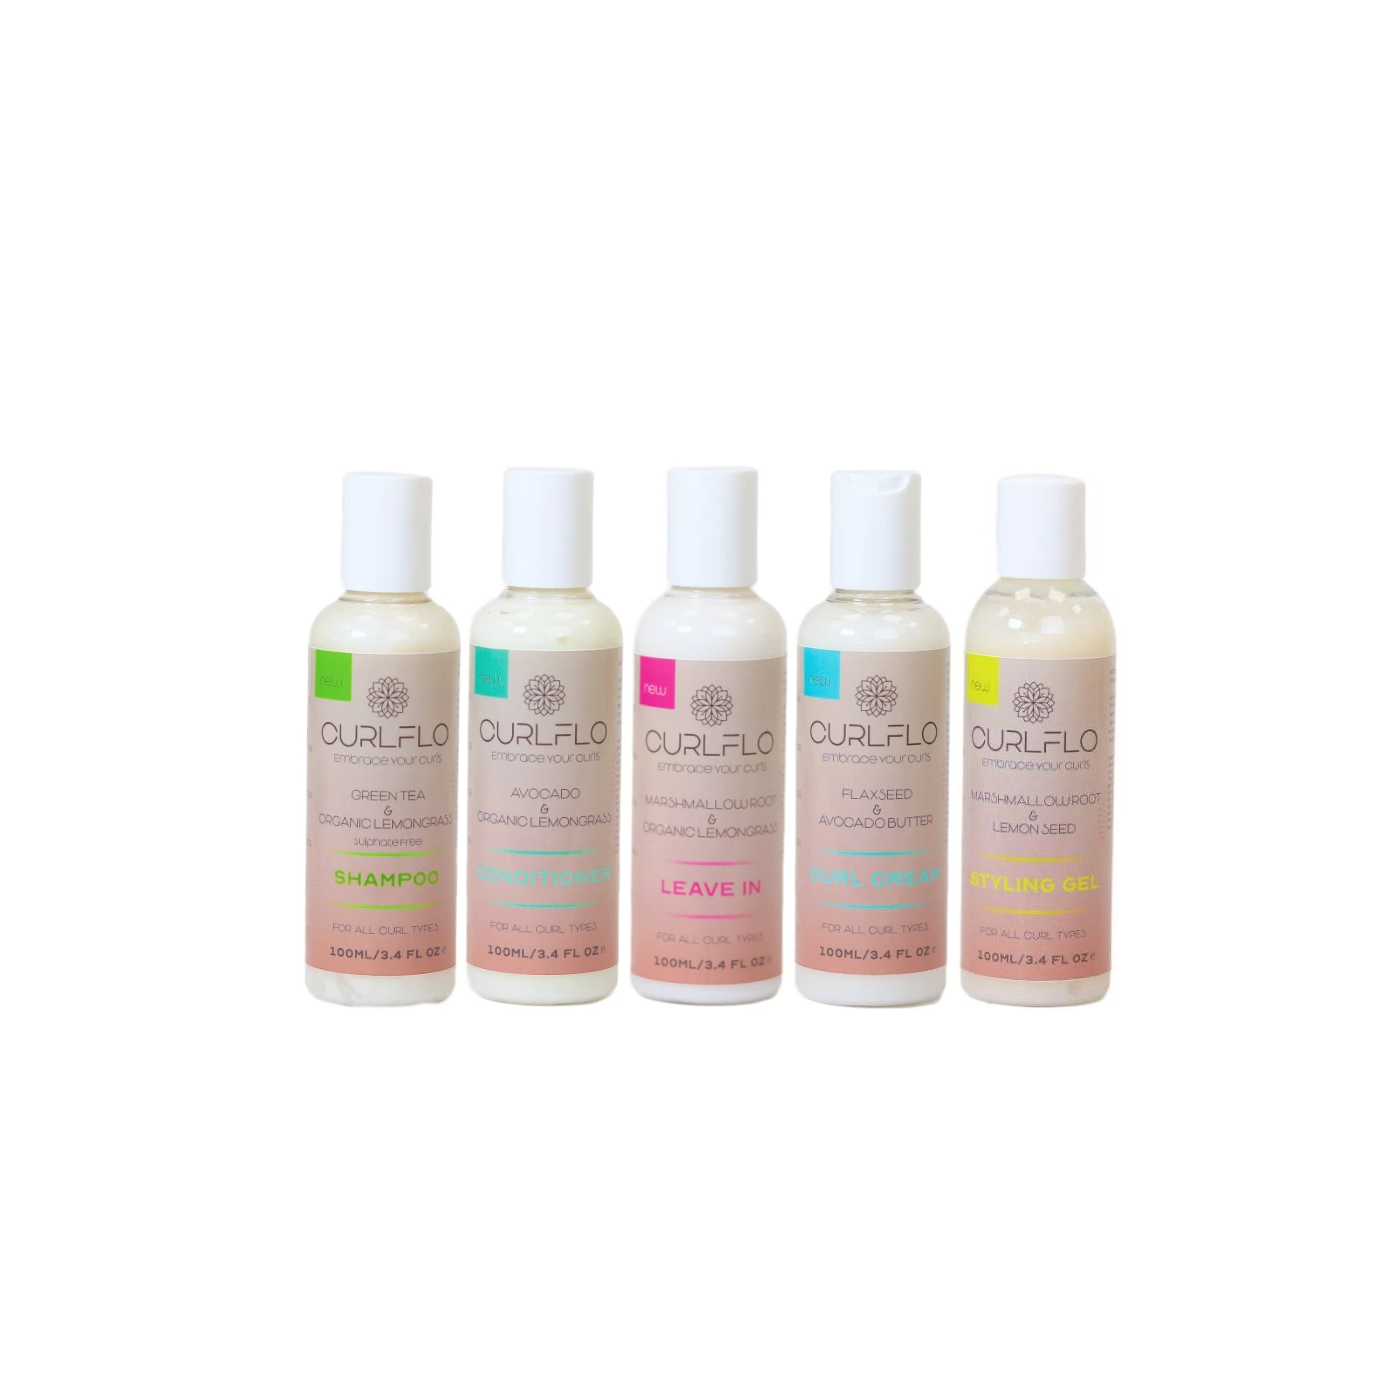 Curl Flo Travel Sizes